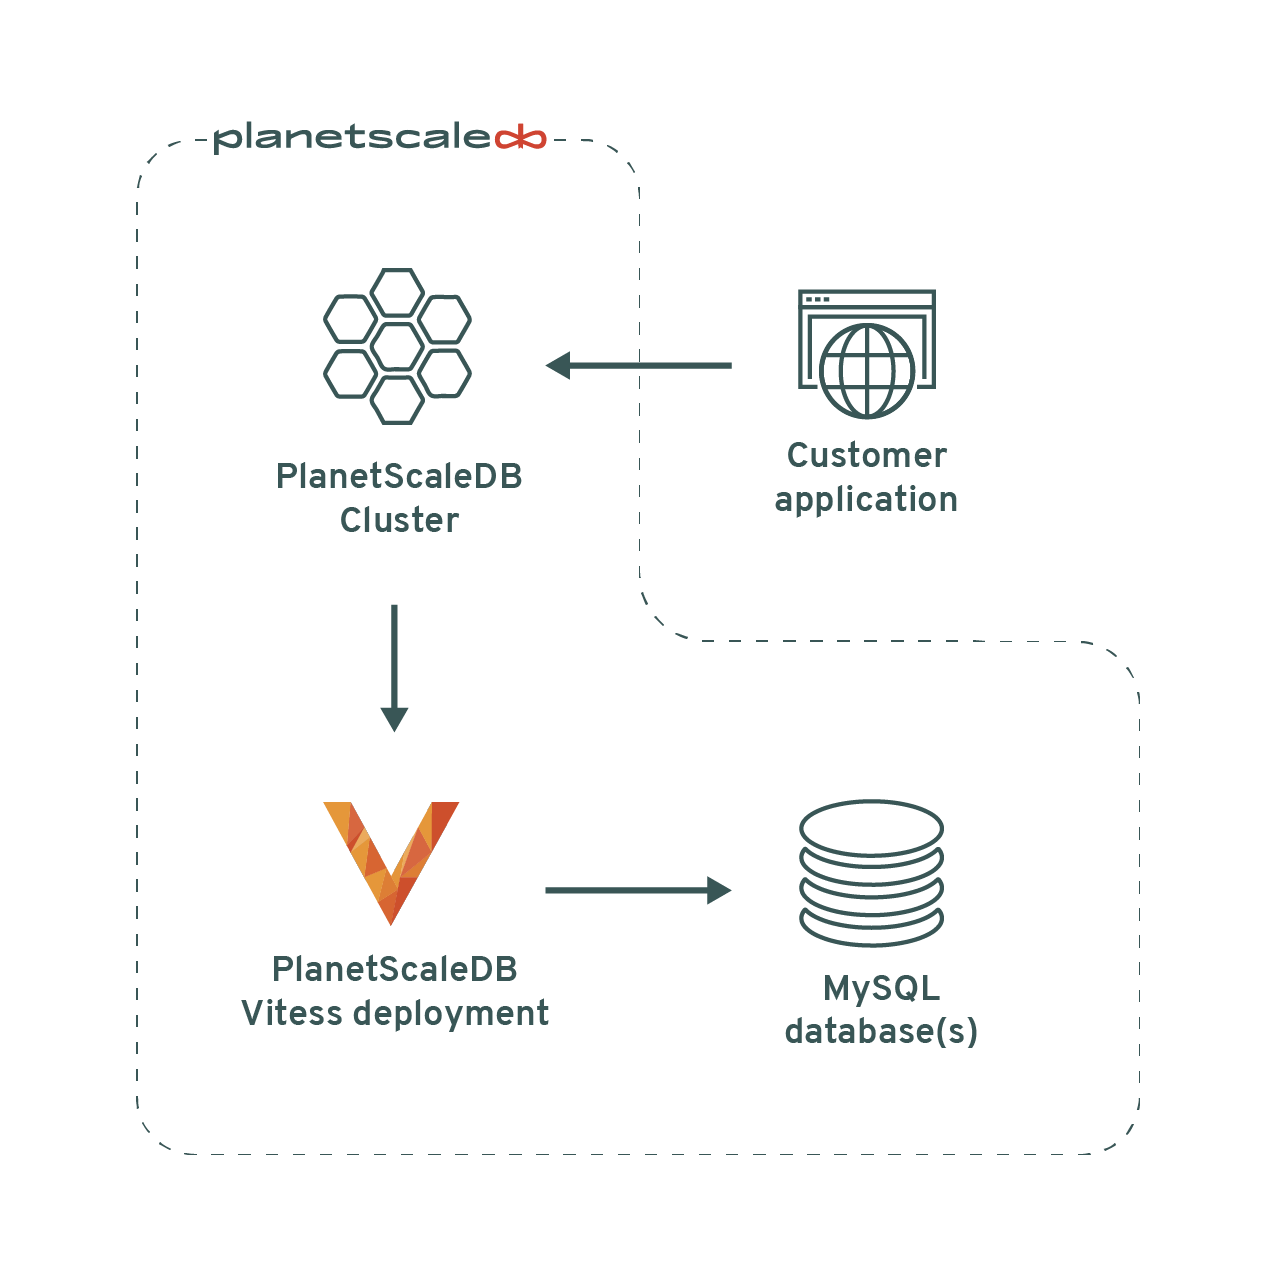 Fully-hosted PlanetScaleDB architecture diagram